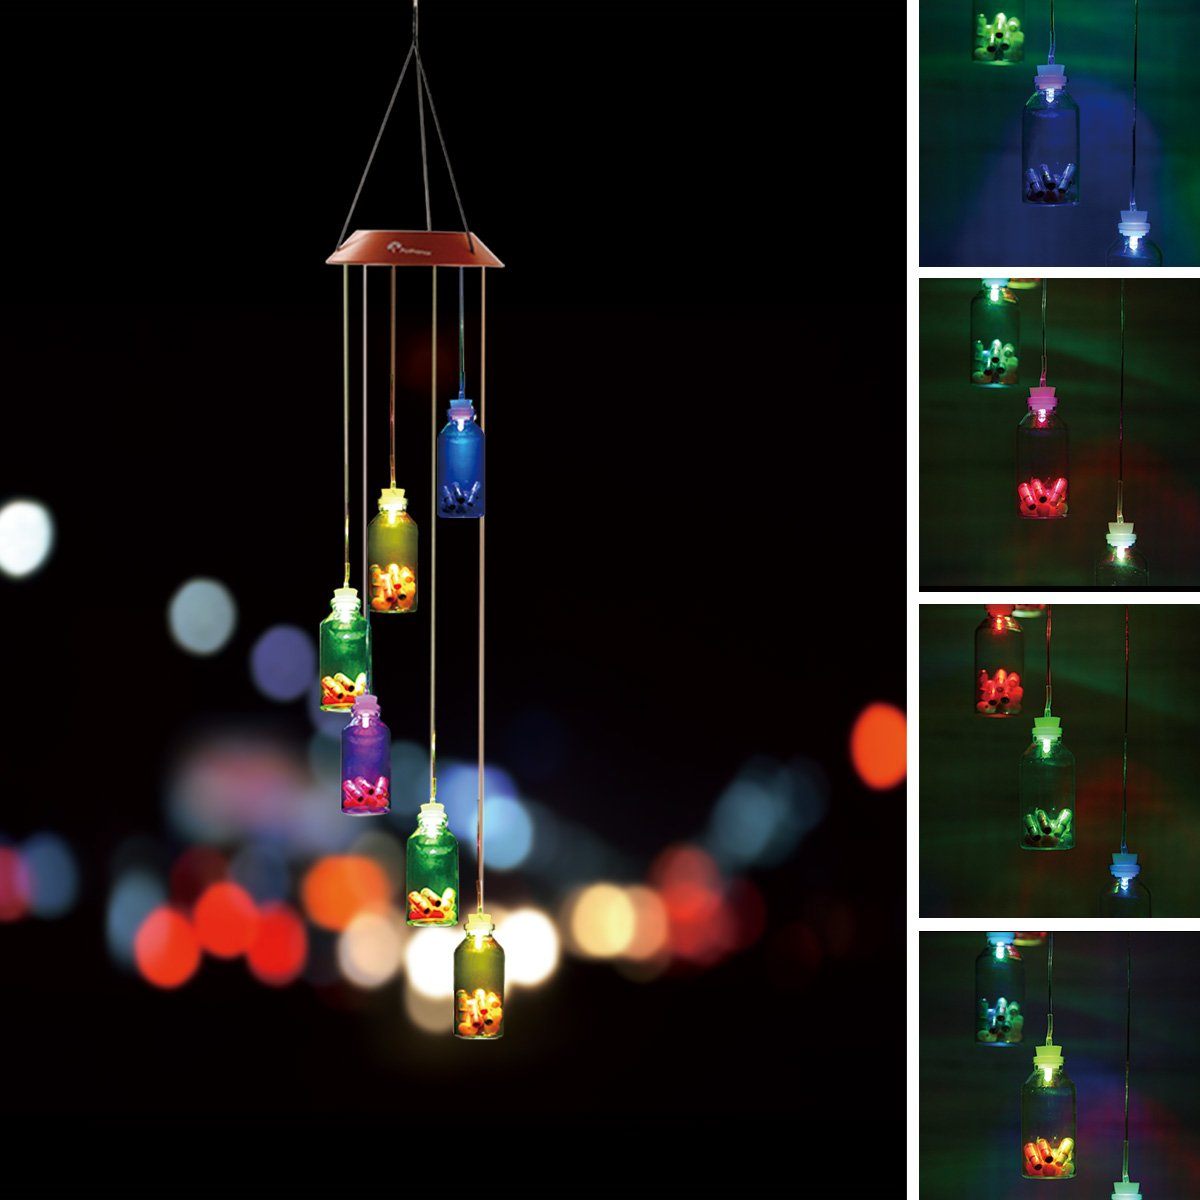 PATHONOR Color-Changing LED Solar Mobile Wind Chime, LED Waterproof Wind Chime Wishing Bottles Wind Chimes Home/Party/Night Garden Decor